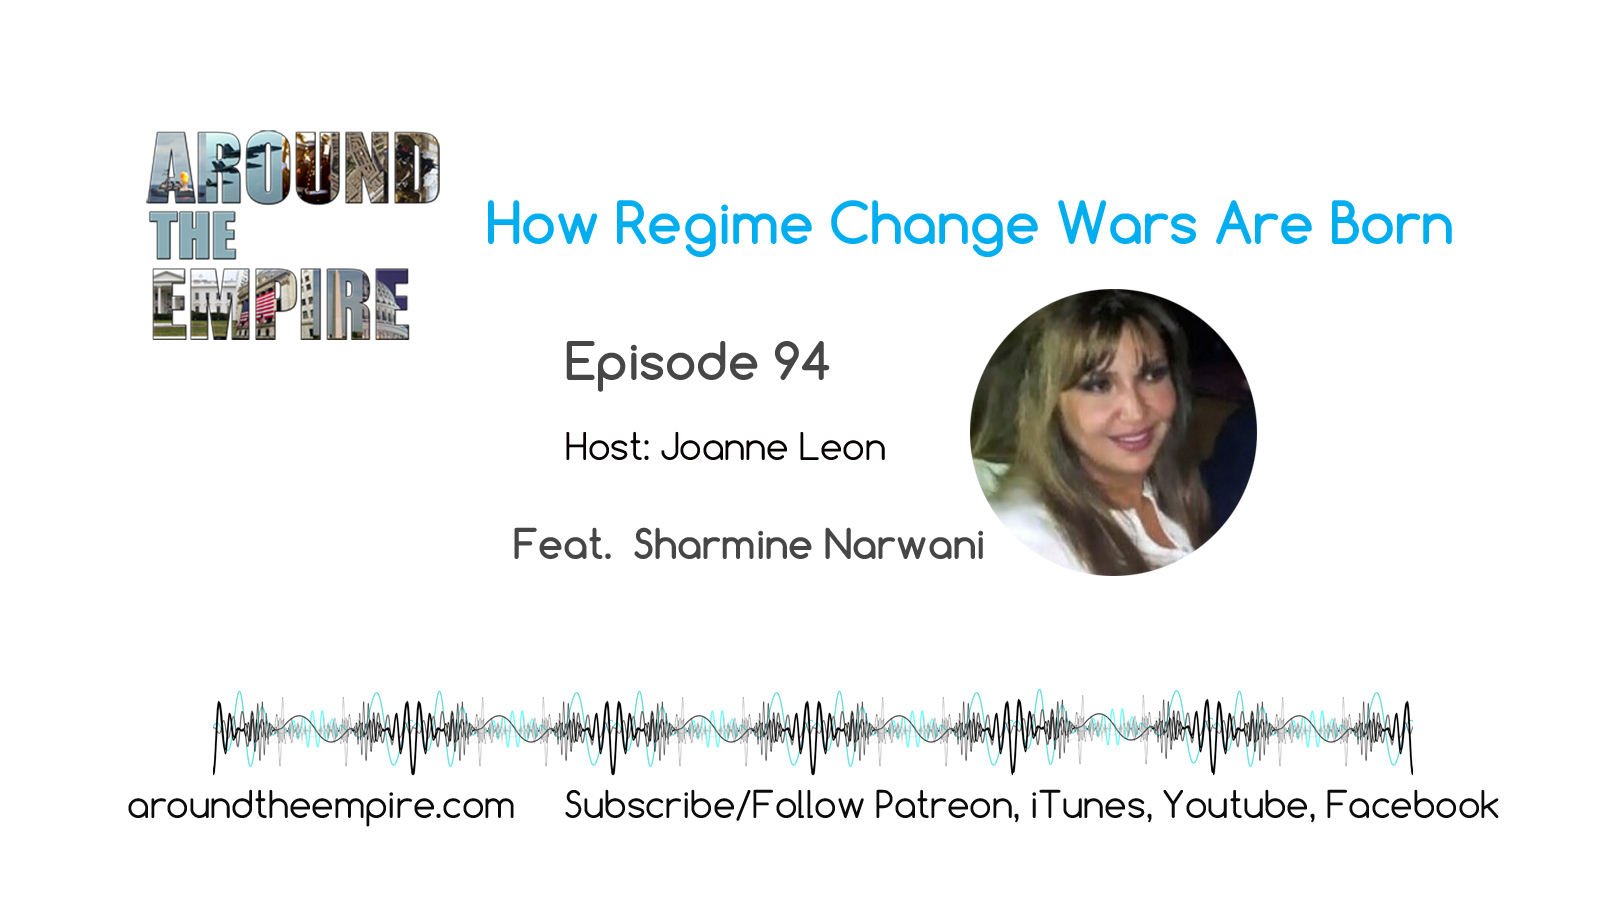 Ep94 How Regime Change Wars Are Born feat Sharmine Narwani